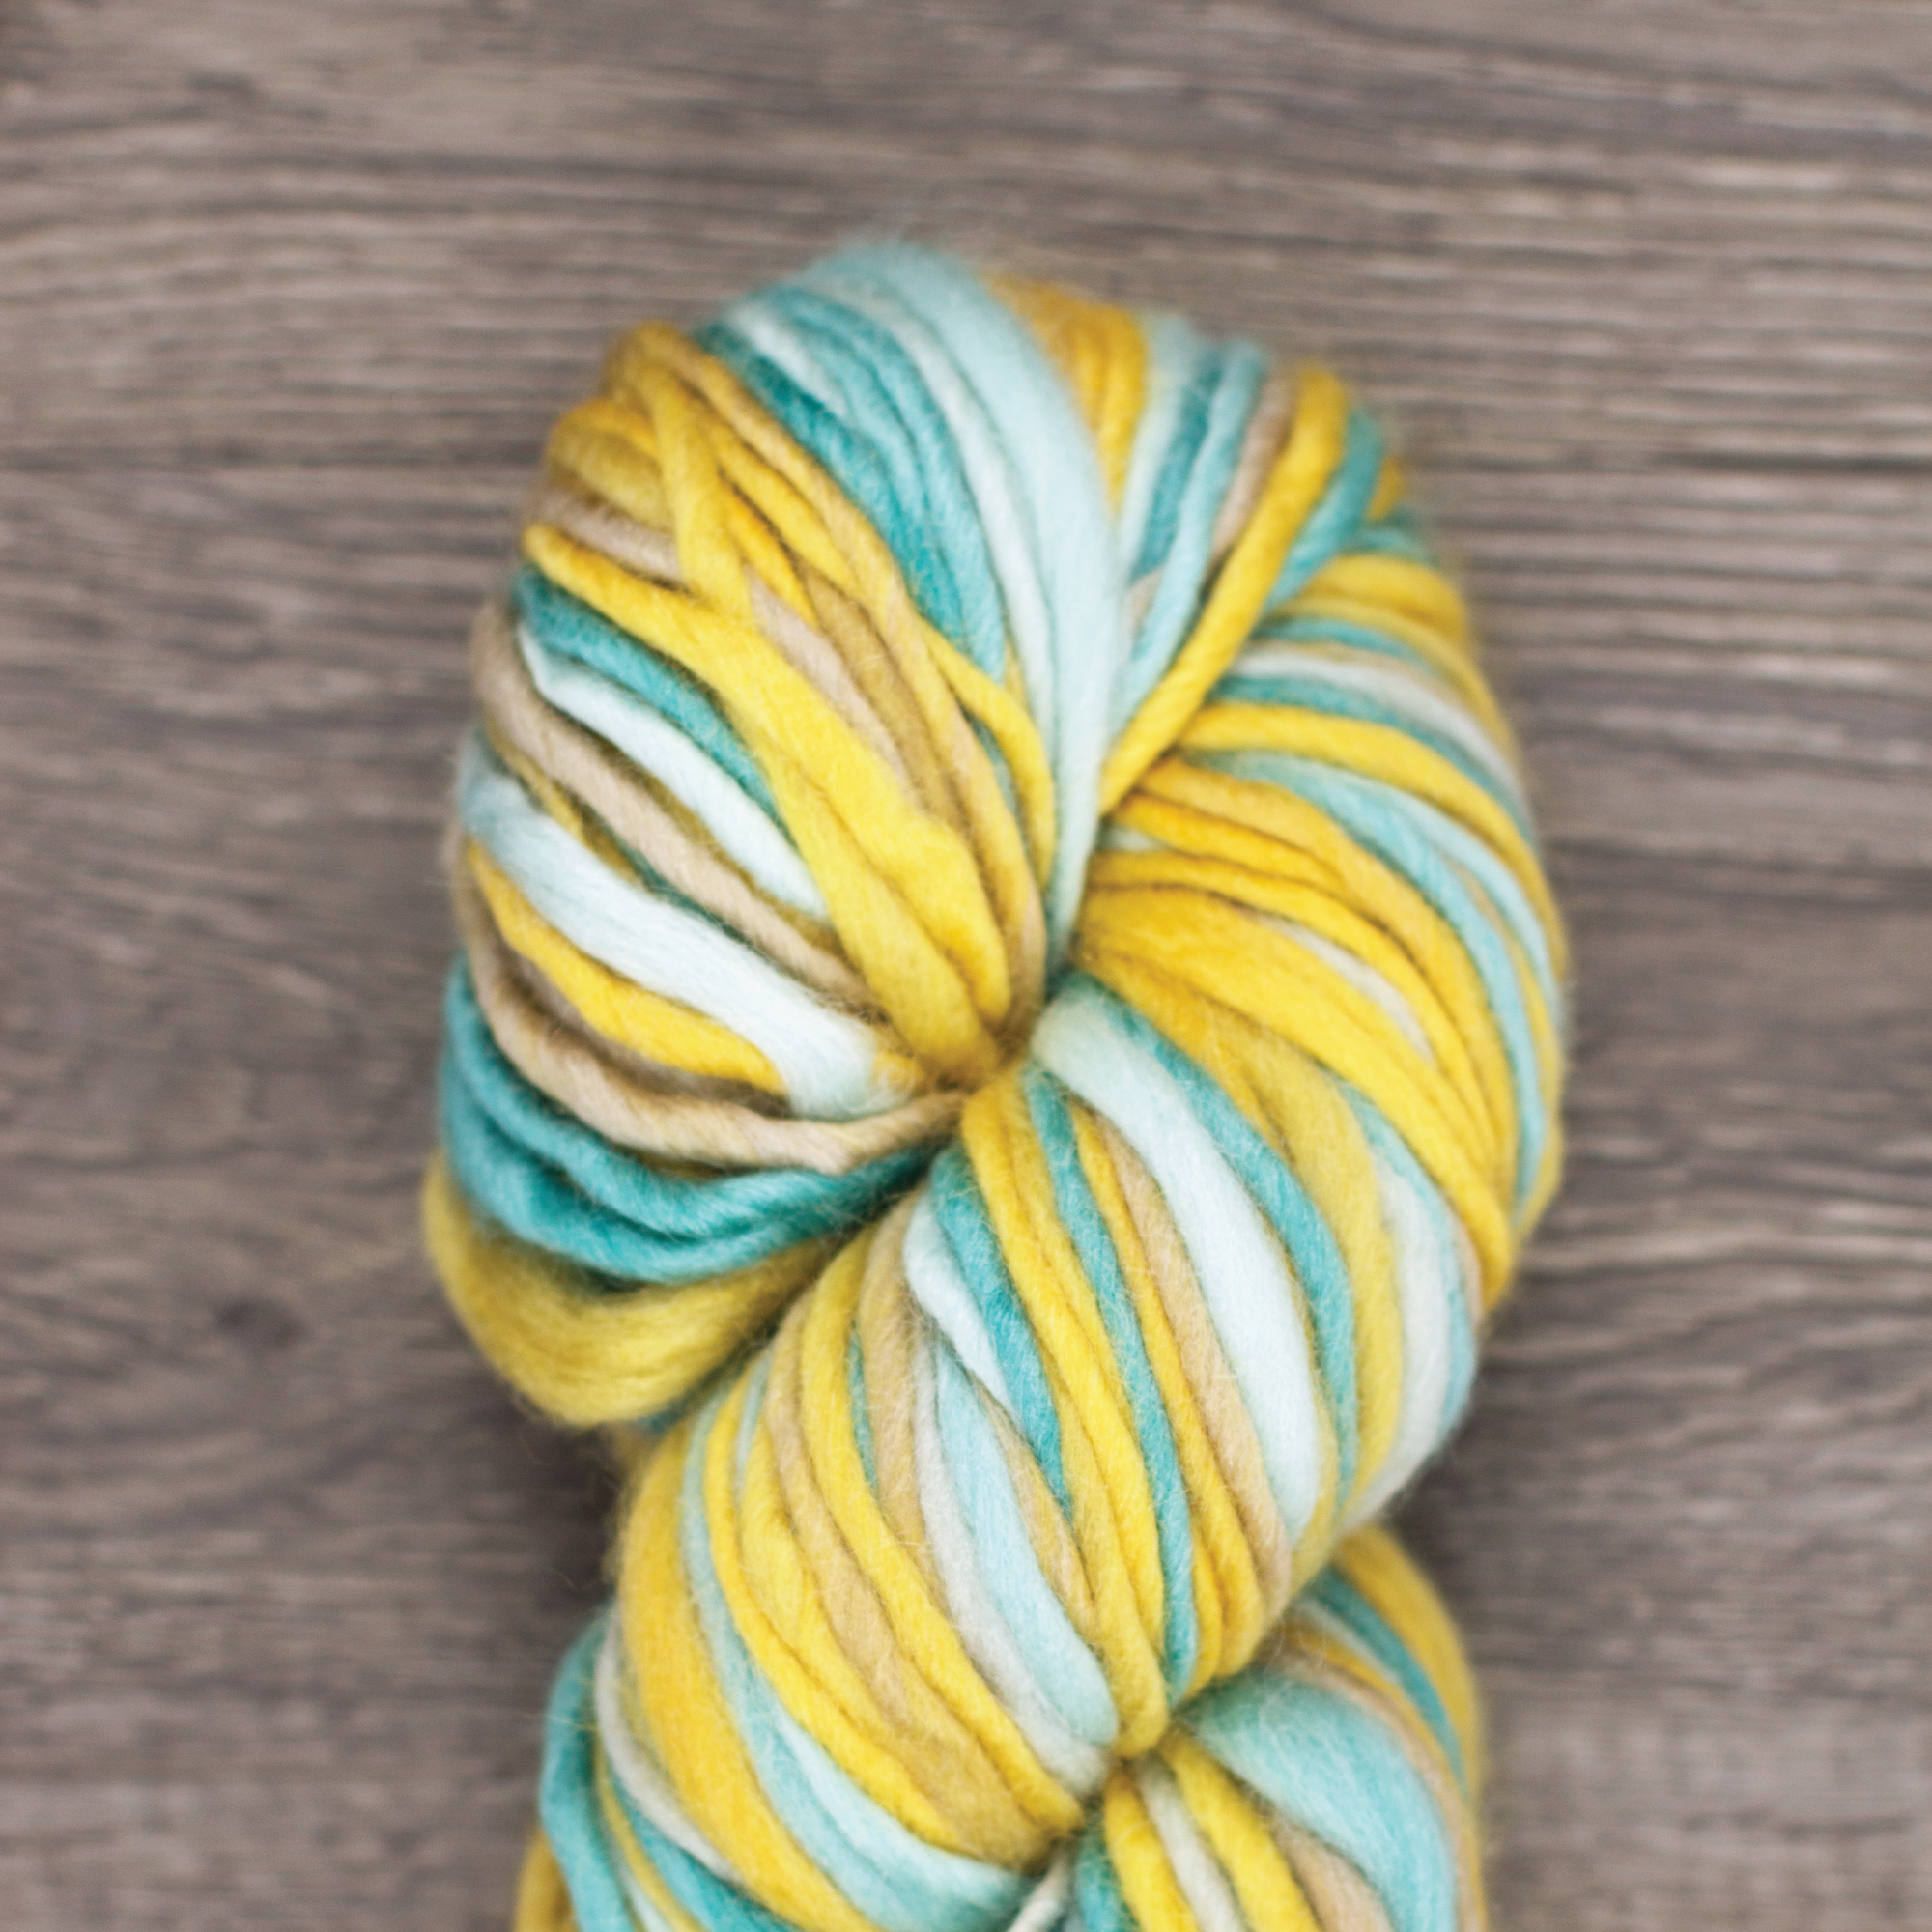 VIVACE by Cloud9 Fibers — 900212 | COASTAL BREEZE